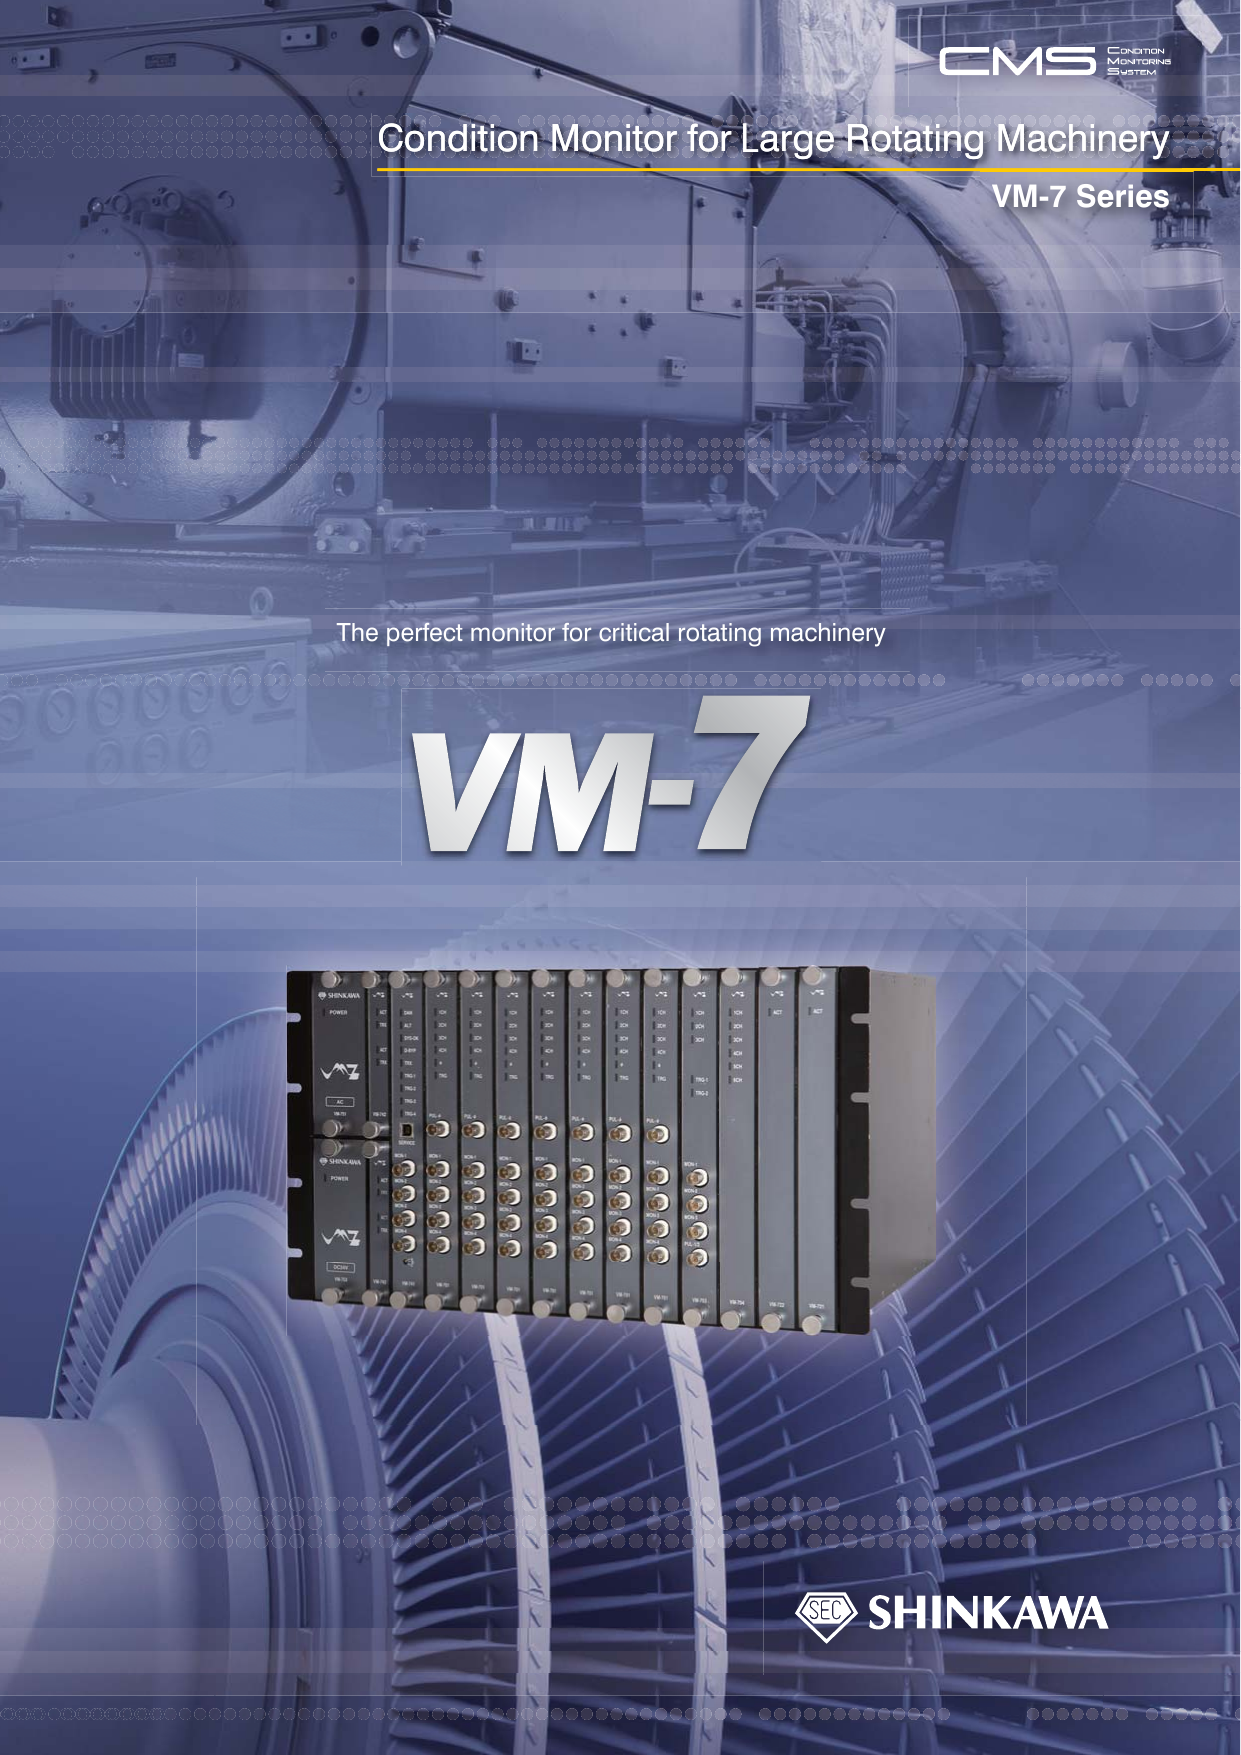 Condition Monitor for Large Rotating Machinery VM-7 Series